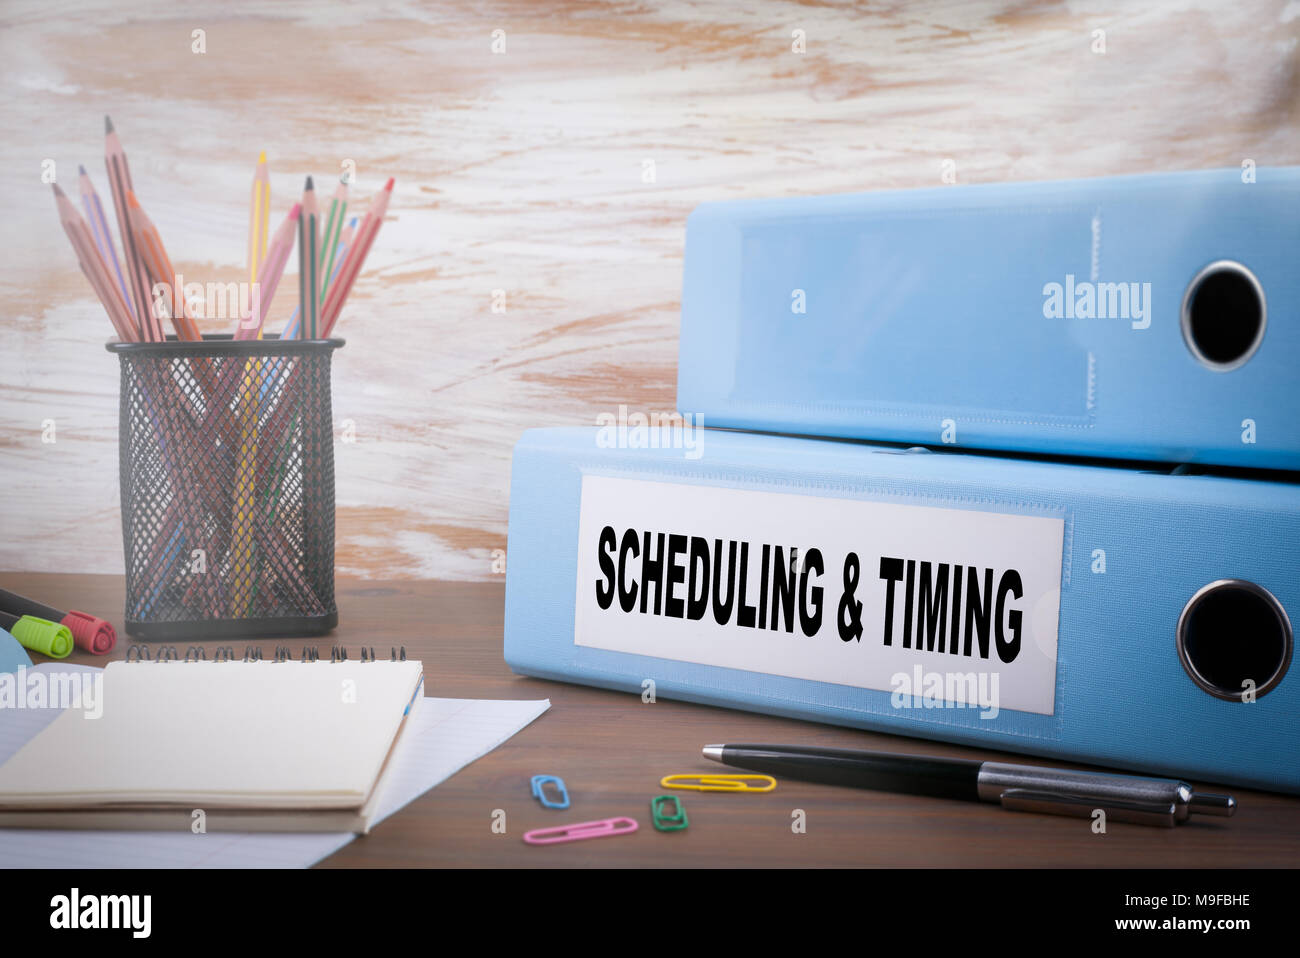 Scheduling and Timing, Business Concept - Stock Image